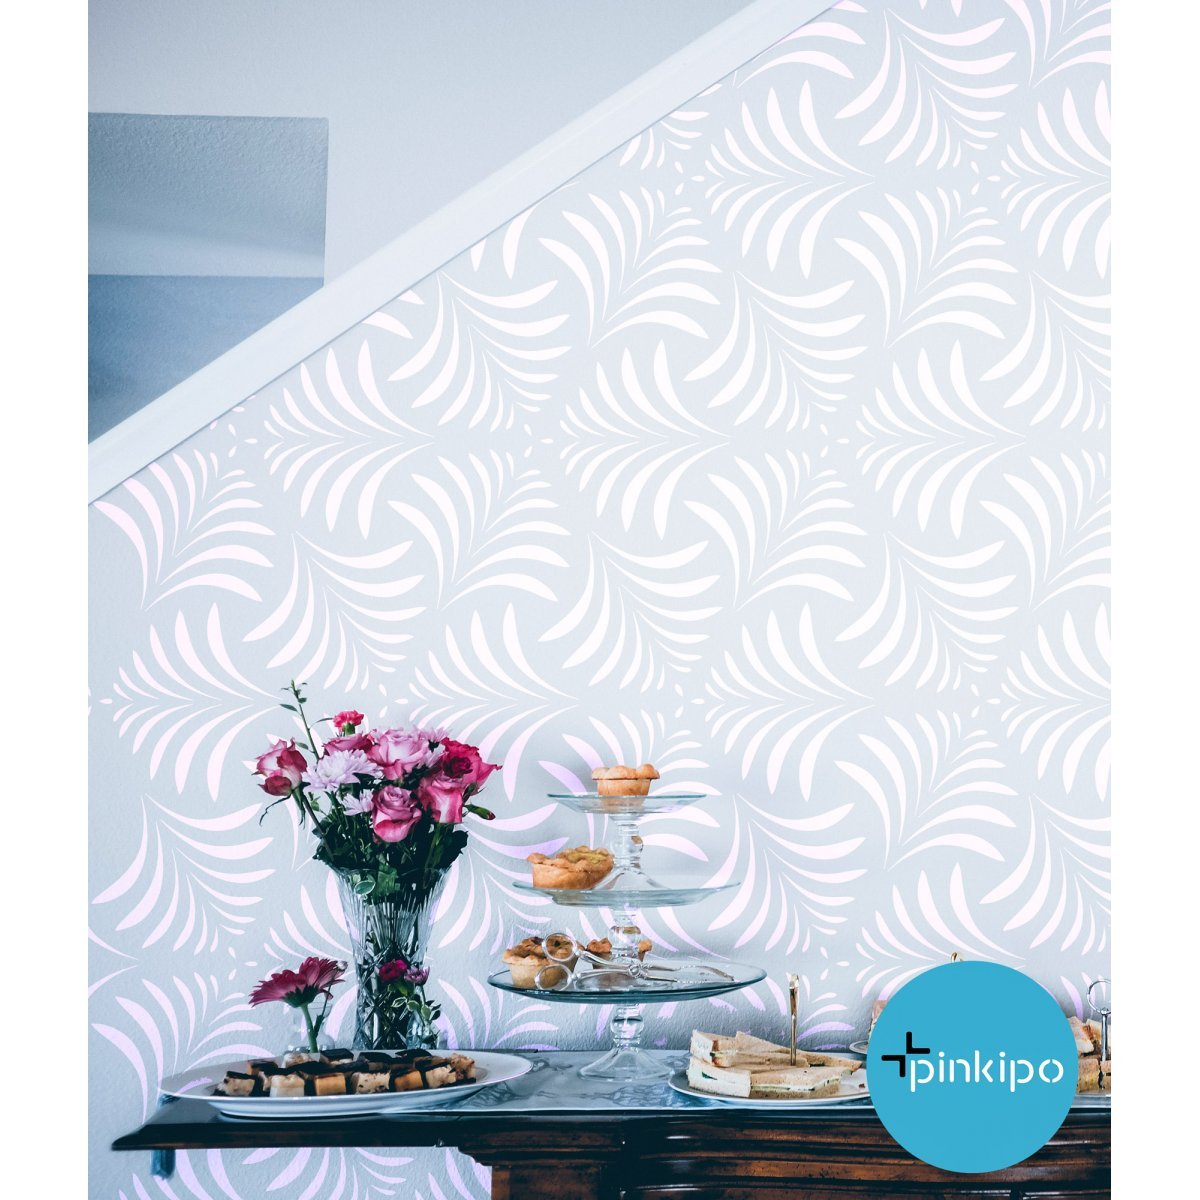 MILAS LEAVES / Reusable Allover Large Wall Stencils for Painting